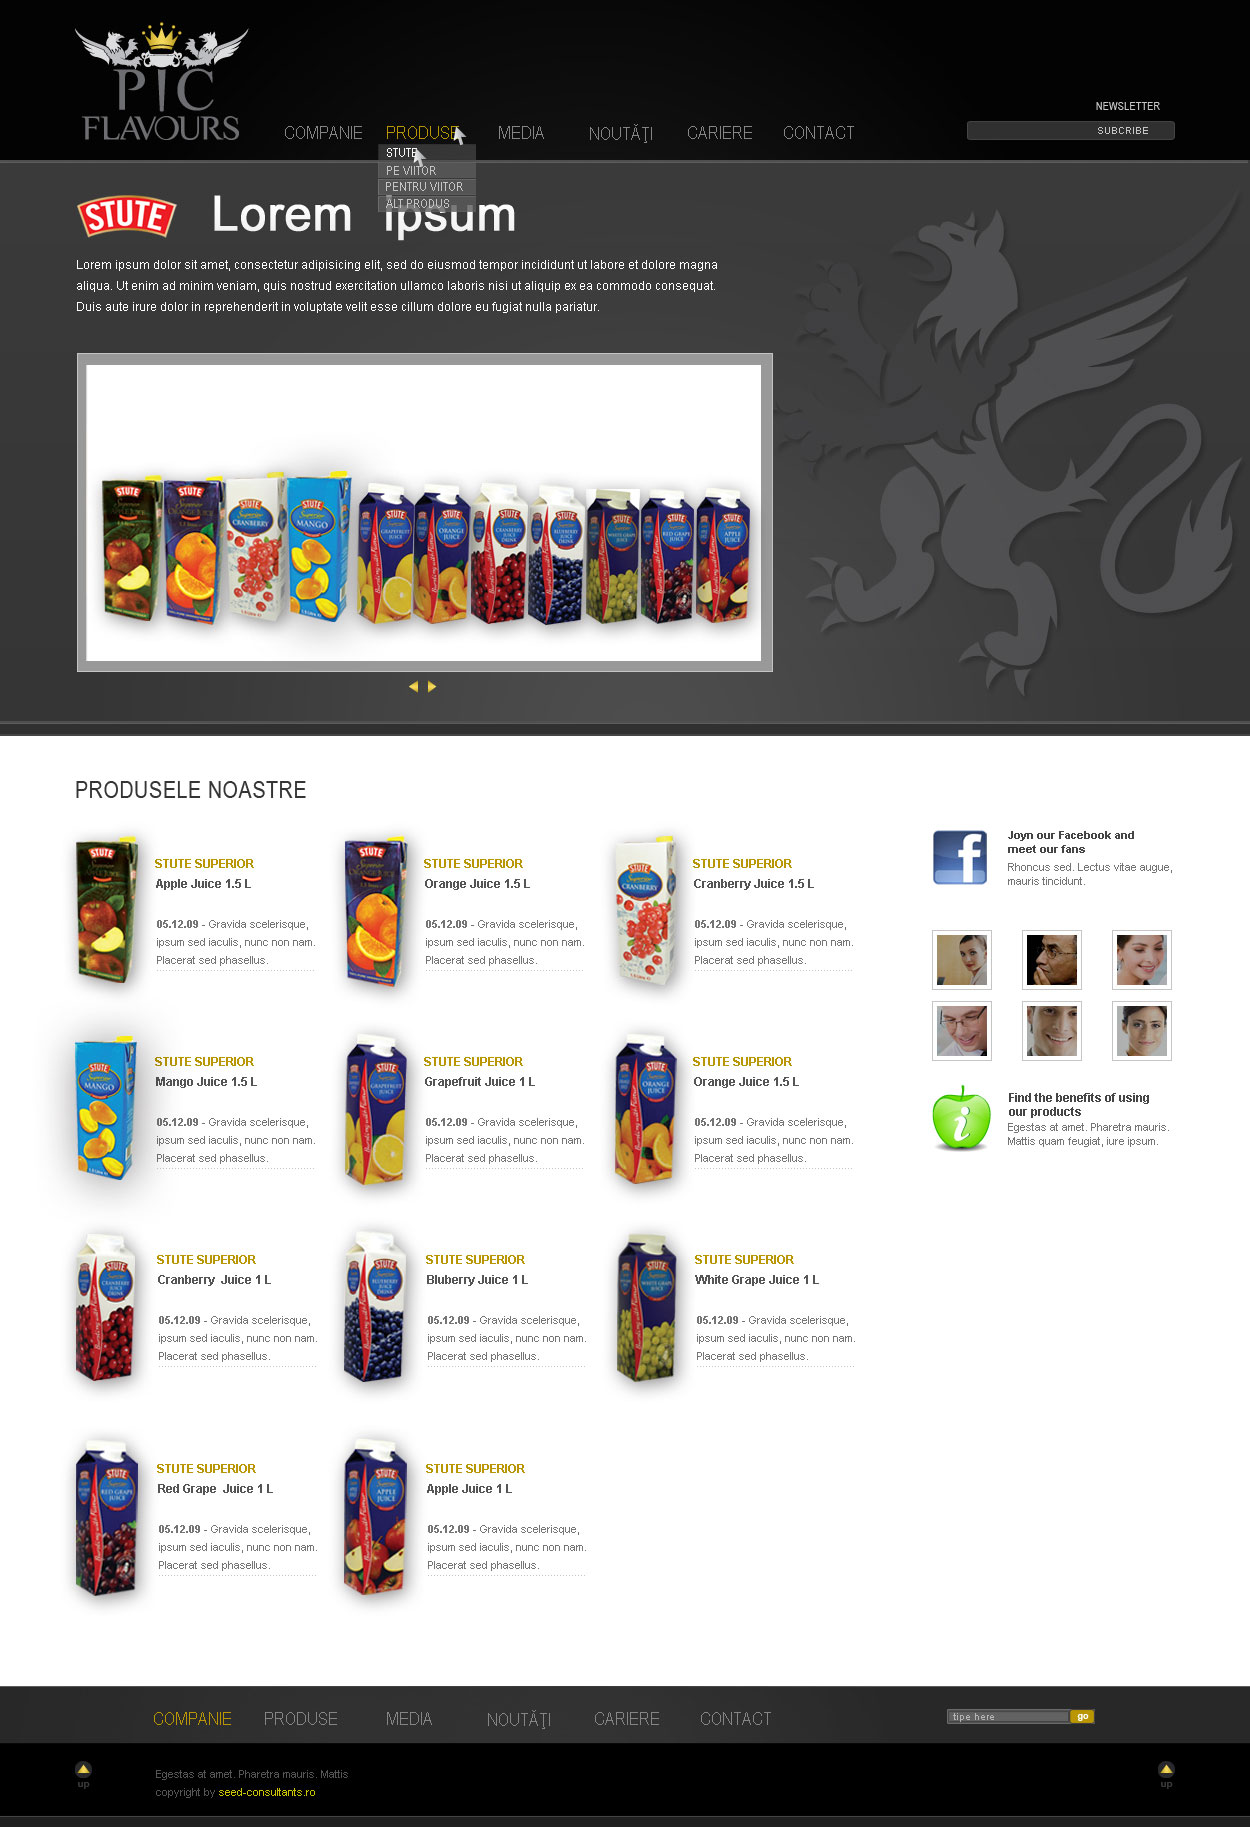 pic flavours branding online